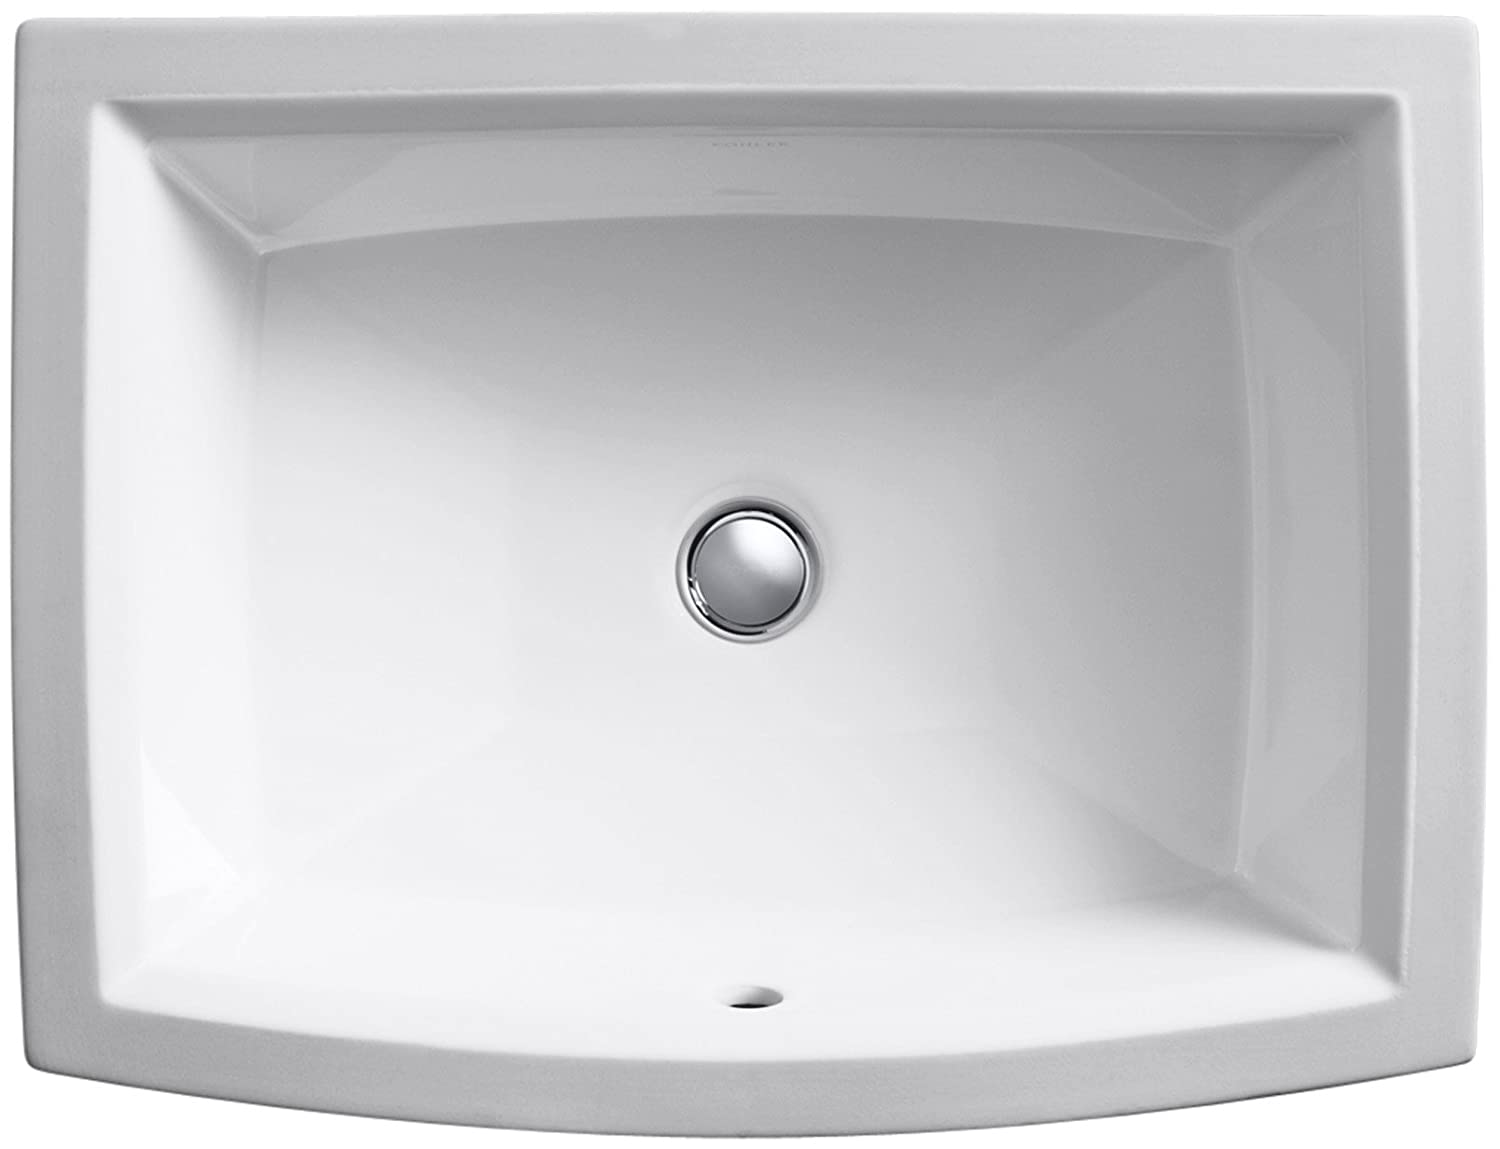 KOHLER K-2355-0 Archer Undercounter Bathroom Sink, White ...